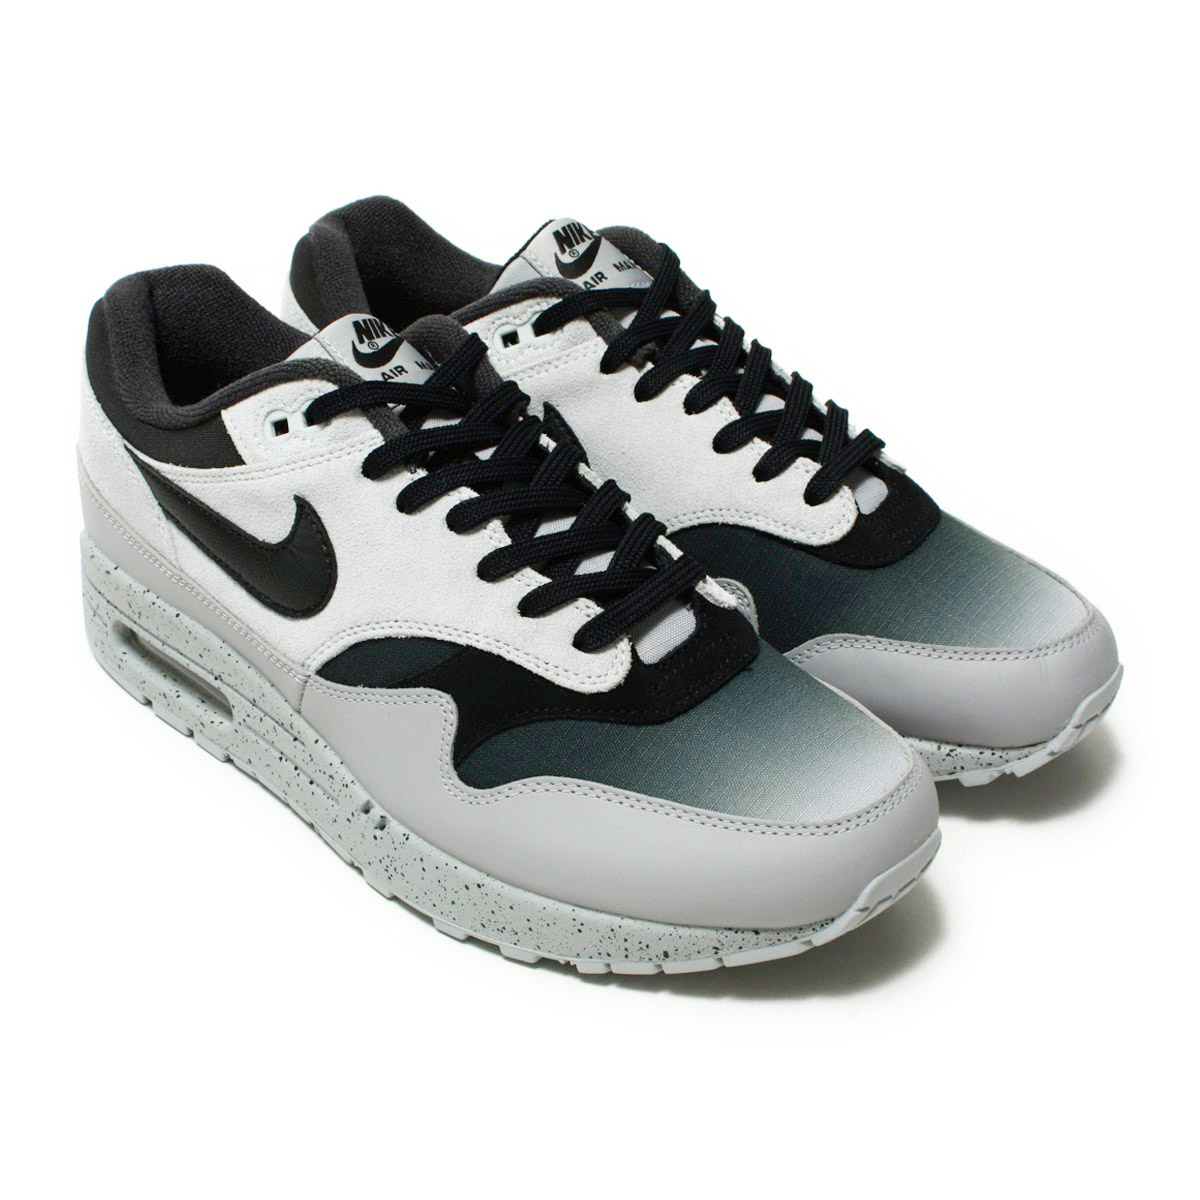 df7ce950cd ★SALE ★ NIKE AIR MAX 1 PREMIUM (Kie Ney AMAX 1 premium) PURE  PLATINUM/BLACK-WOLF GREY-ANTHRACITE 18SP-I